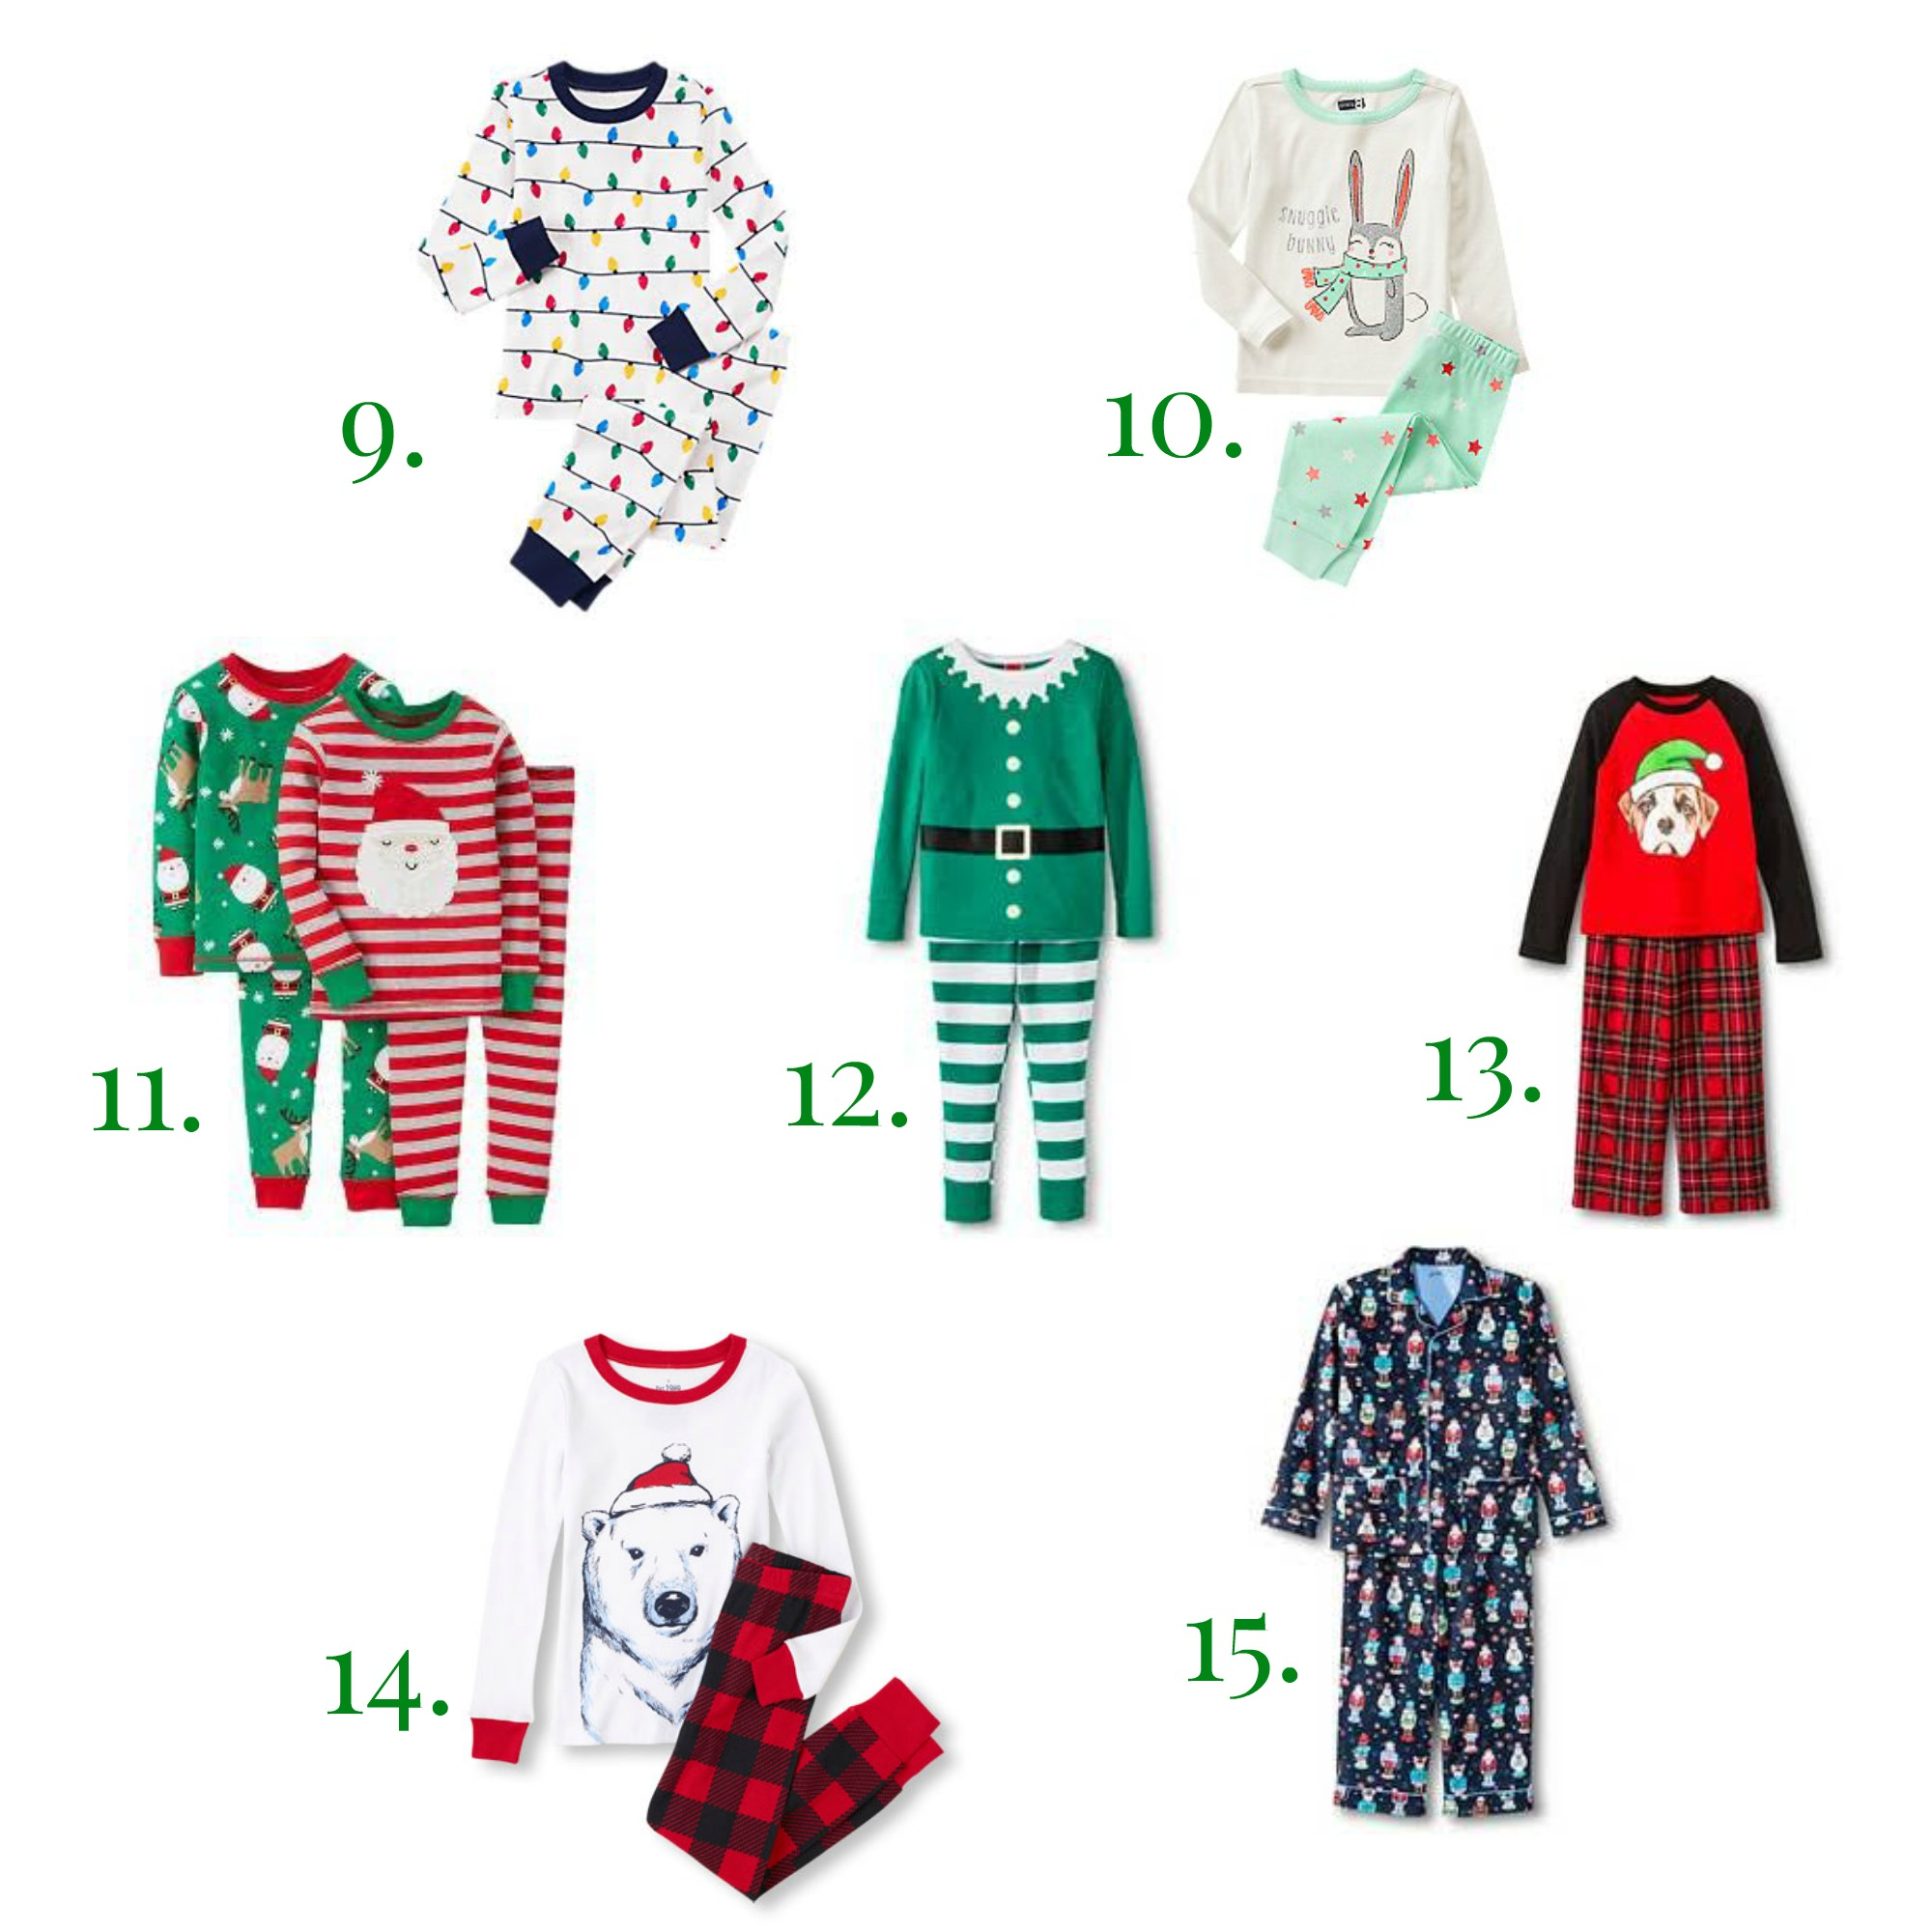 Top 15 Christmas Pajamas